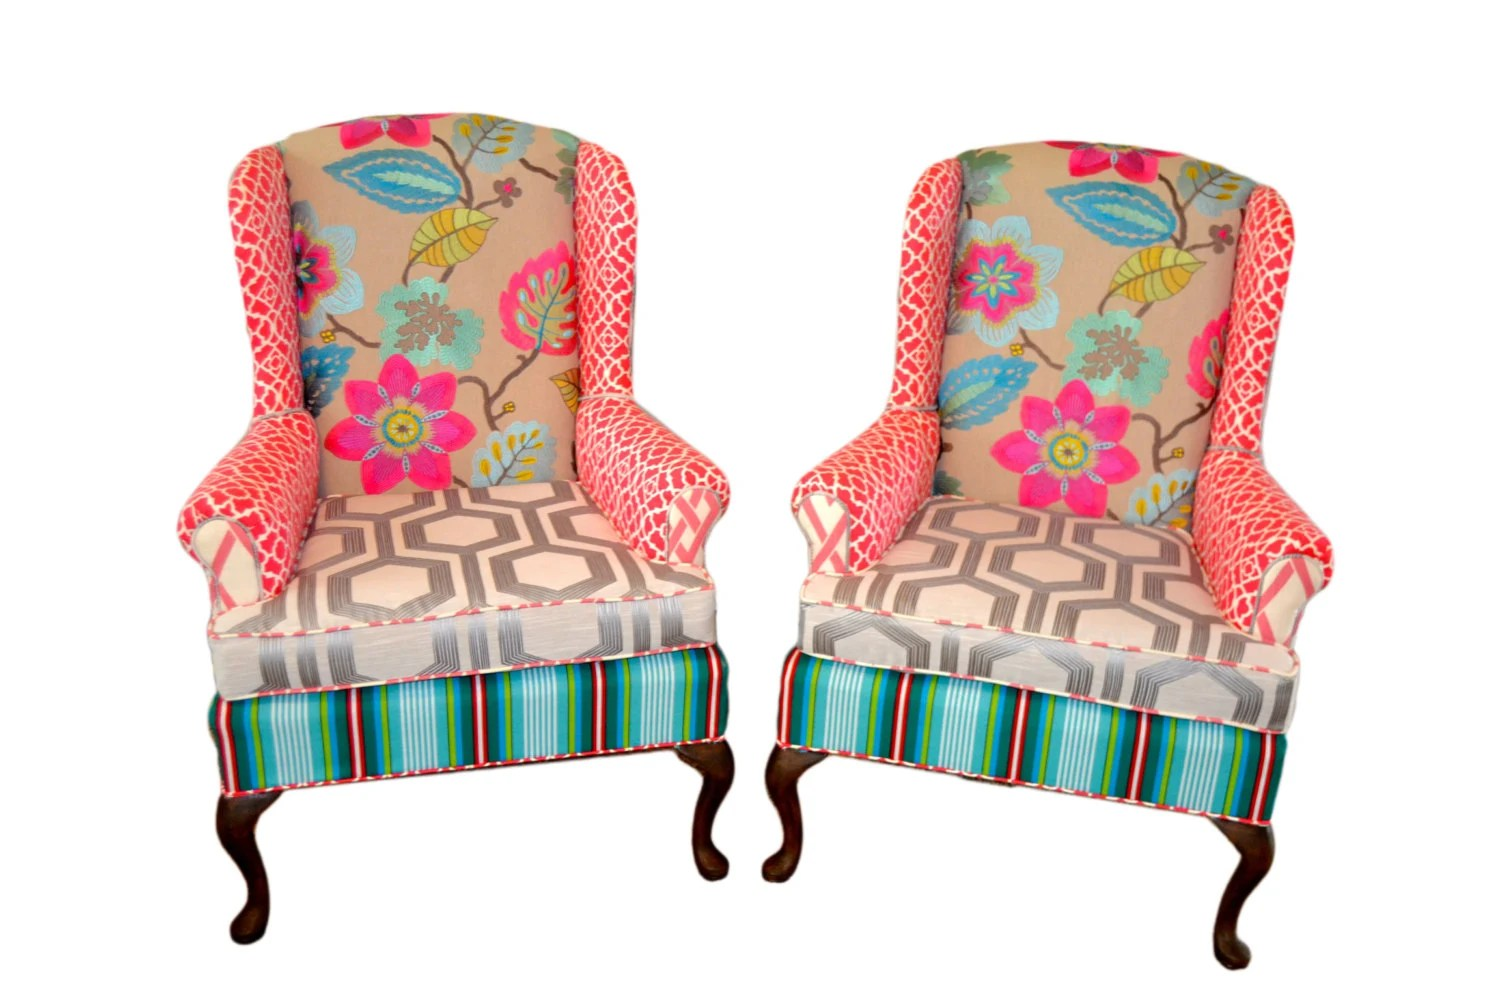 custom made throne chairs office chair back support cushion wingback upholstered vintage with pink and